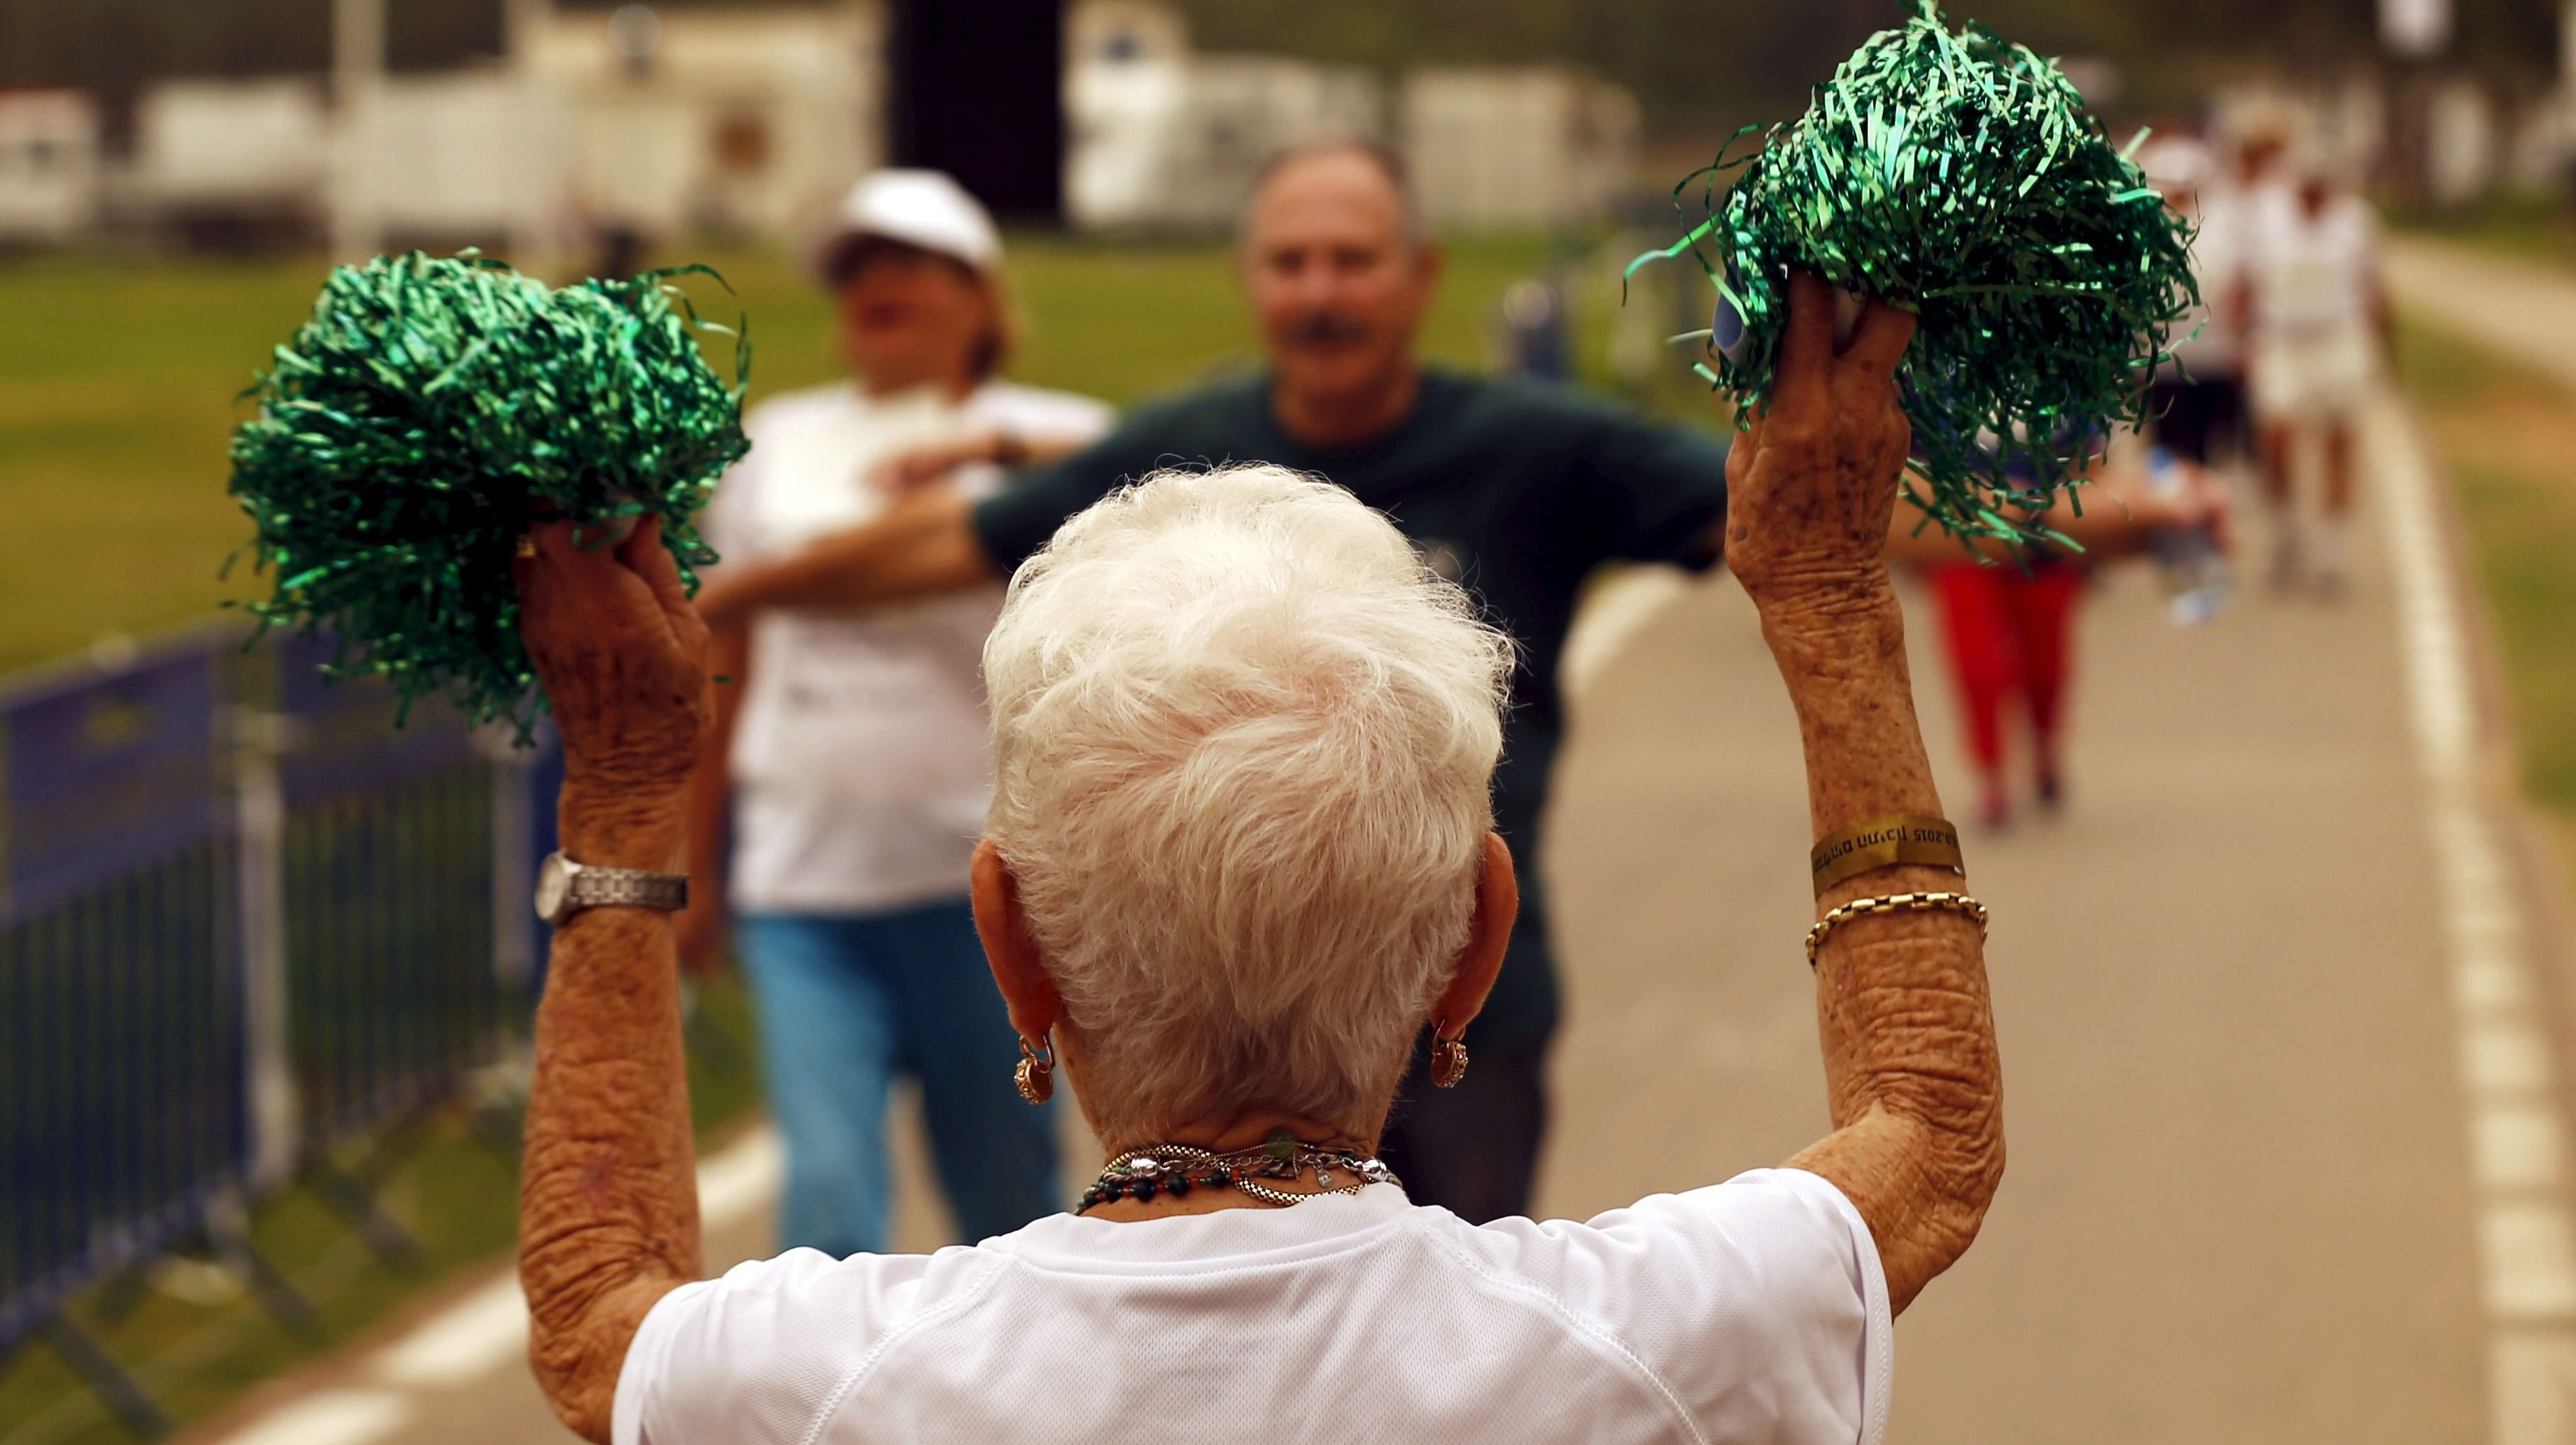 A senior woman cheers as others take part in games for people over 65 years old, organized by a nursing home in Tel Aviv, Israel.